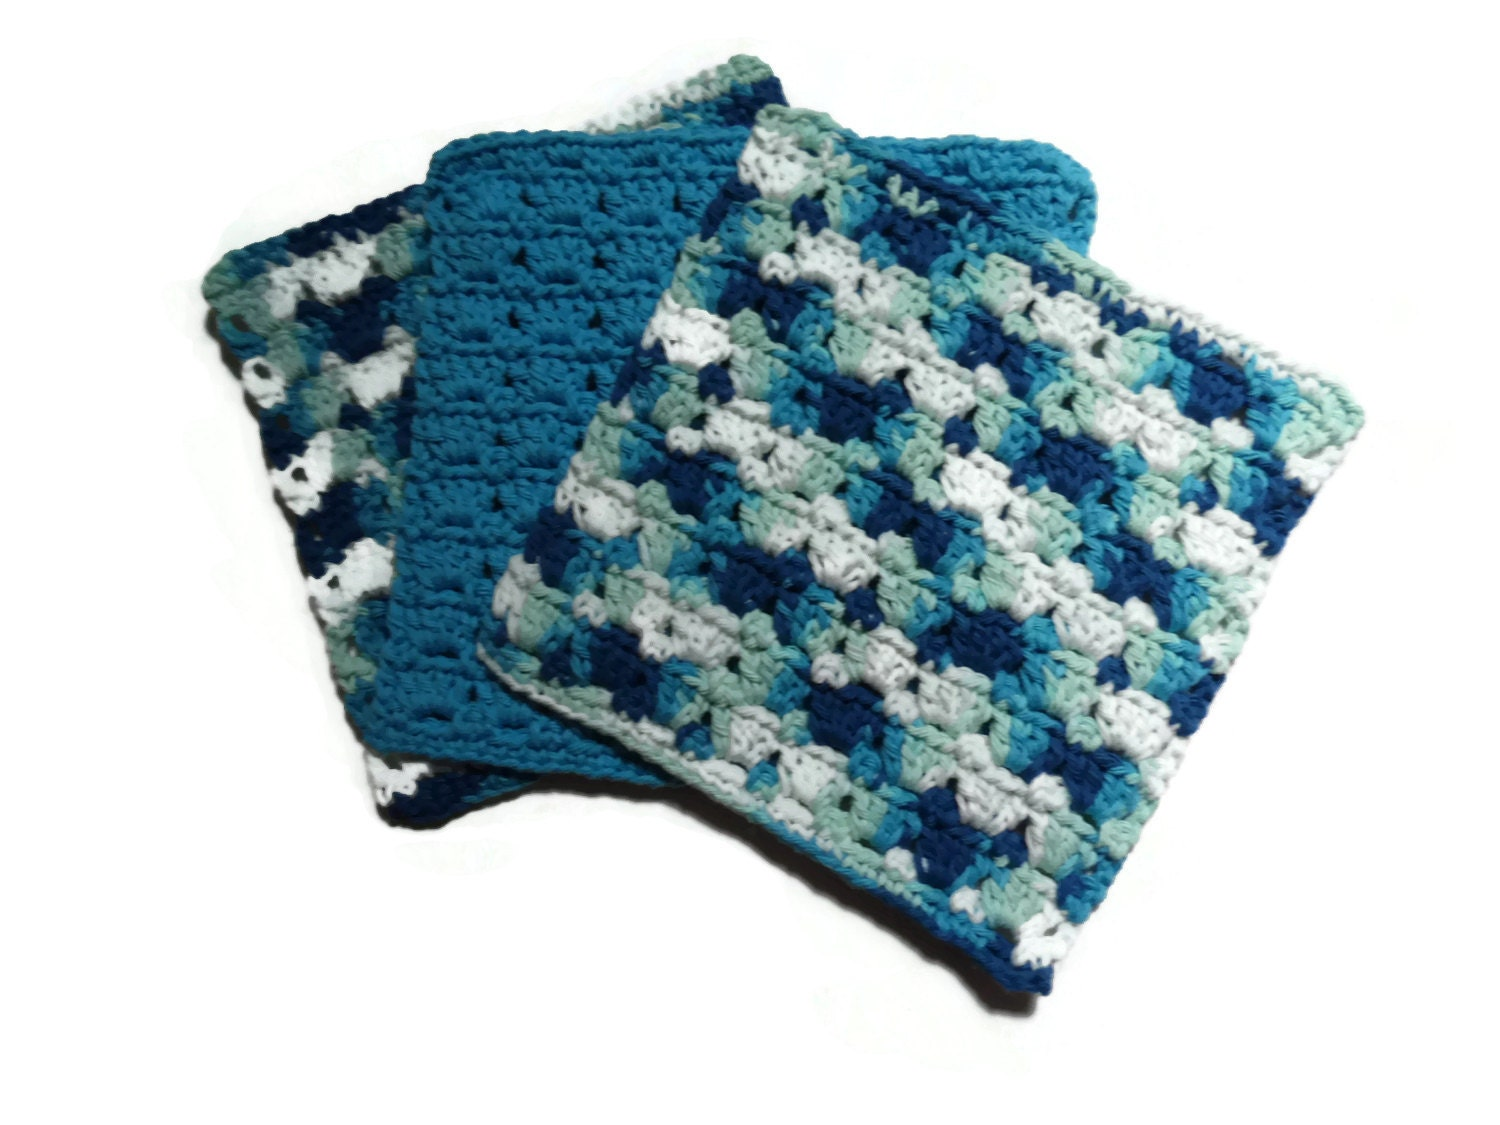 Crocheting Dish Rags : Three Crochet Dish Cloths Dish Rag Wash Cloth Blue by RignalJane